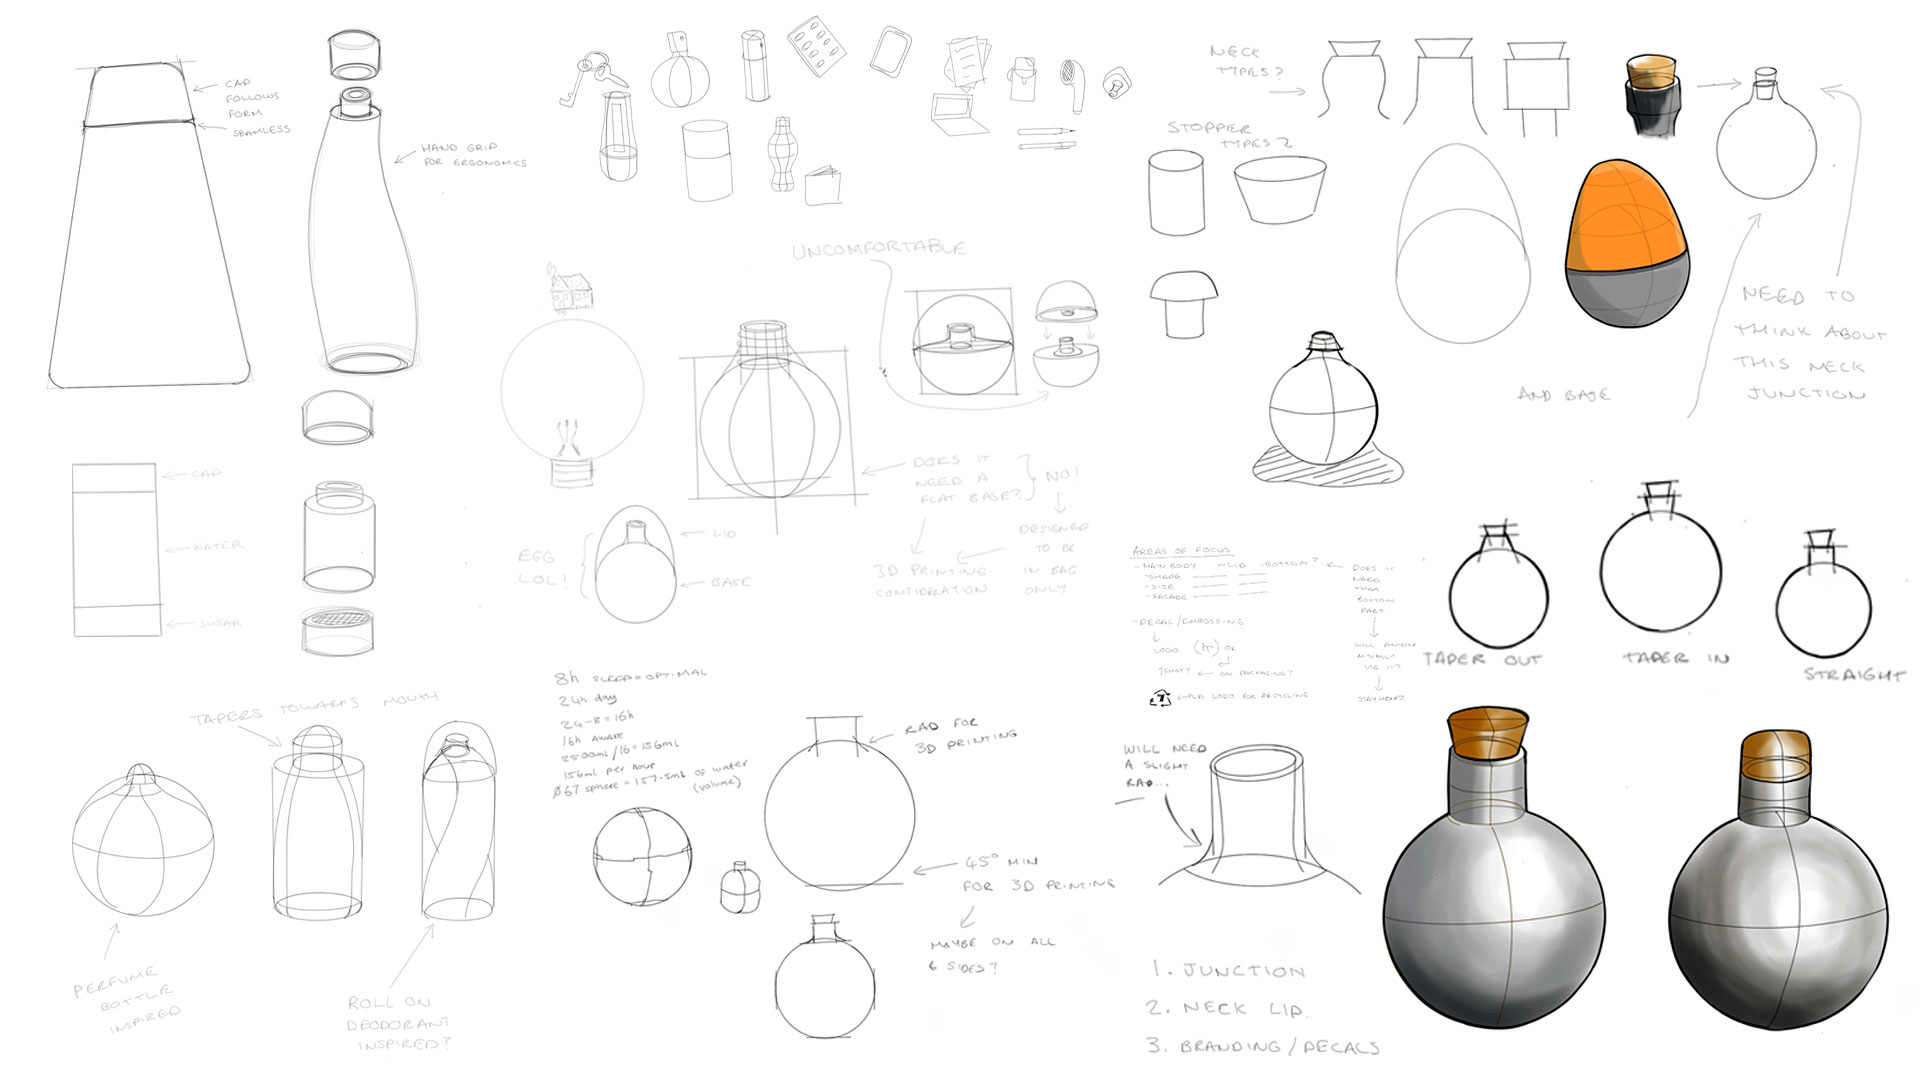 Sketches of Drop water bottle